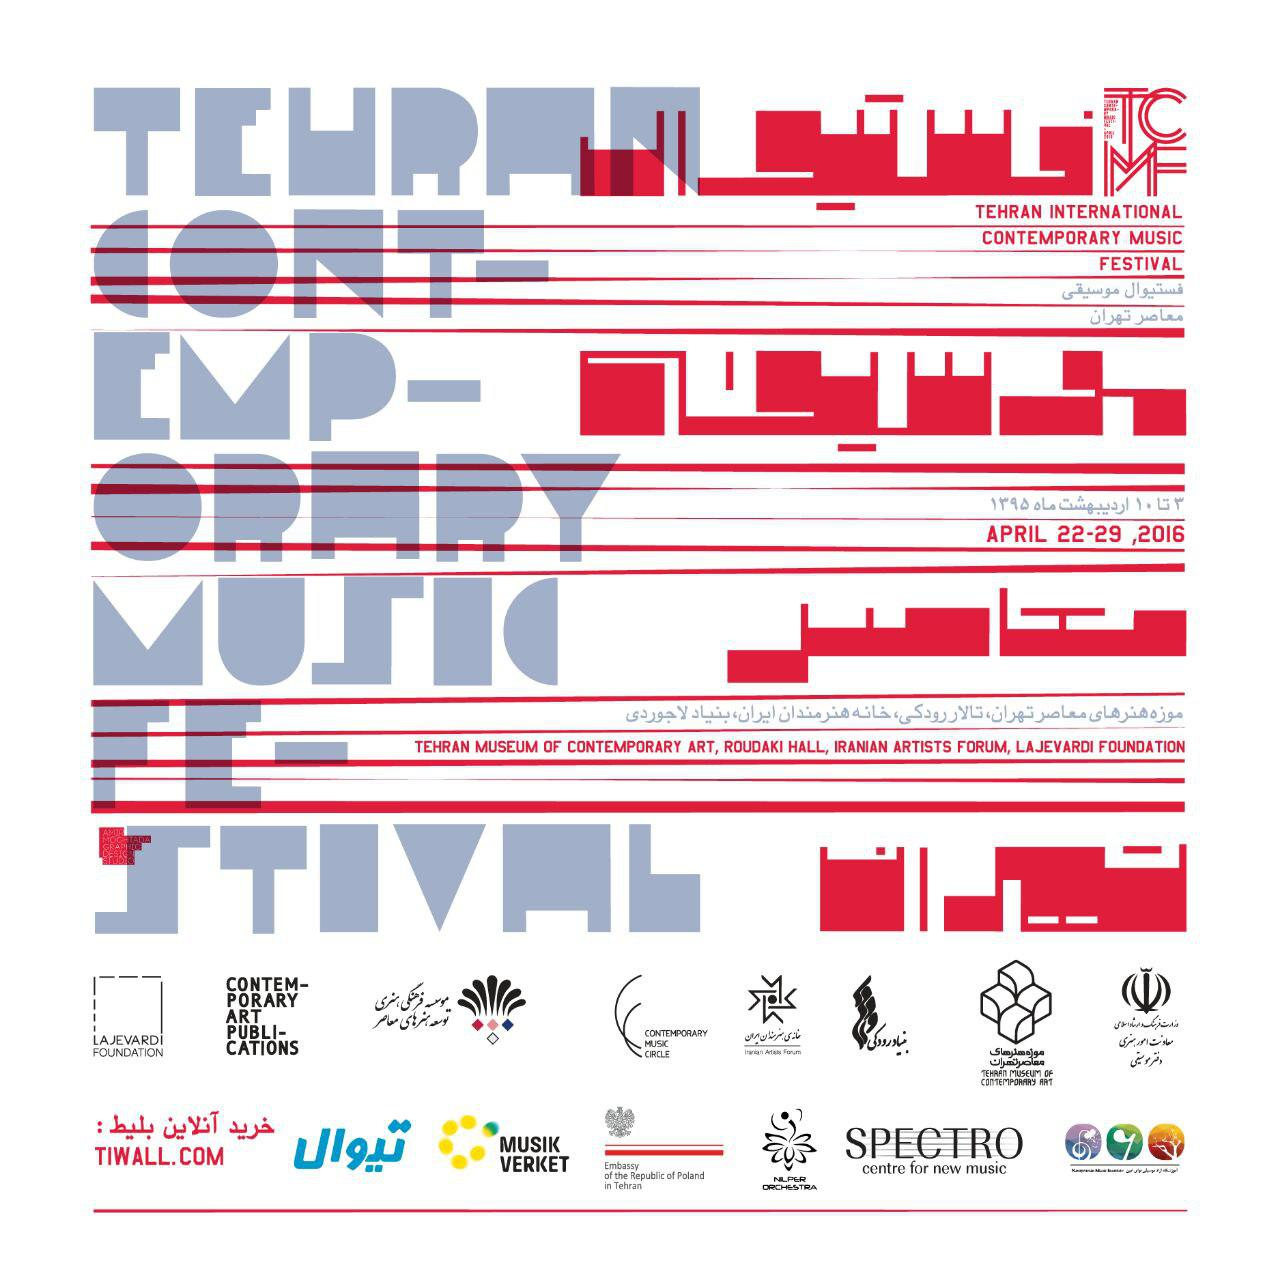 Spectro Centre for New Music - Tehran COntemporary Music FEstival